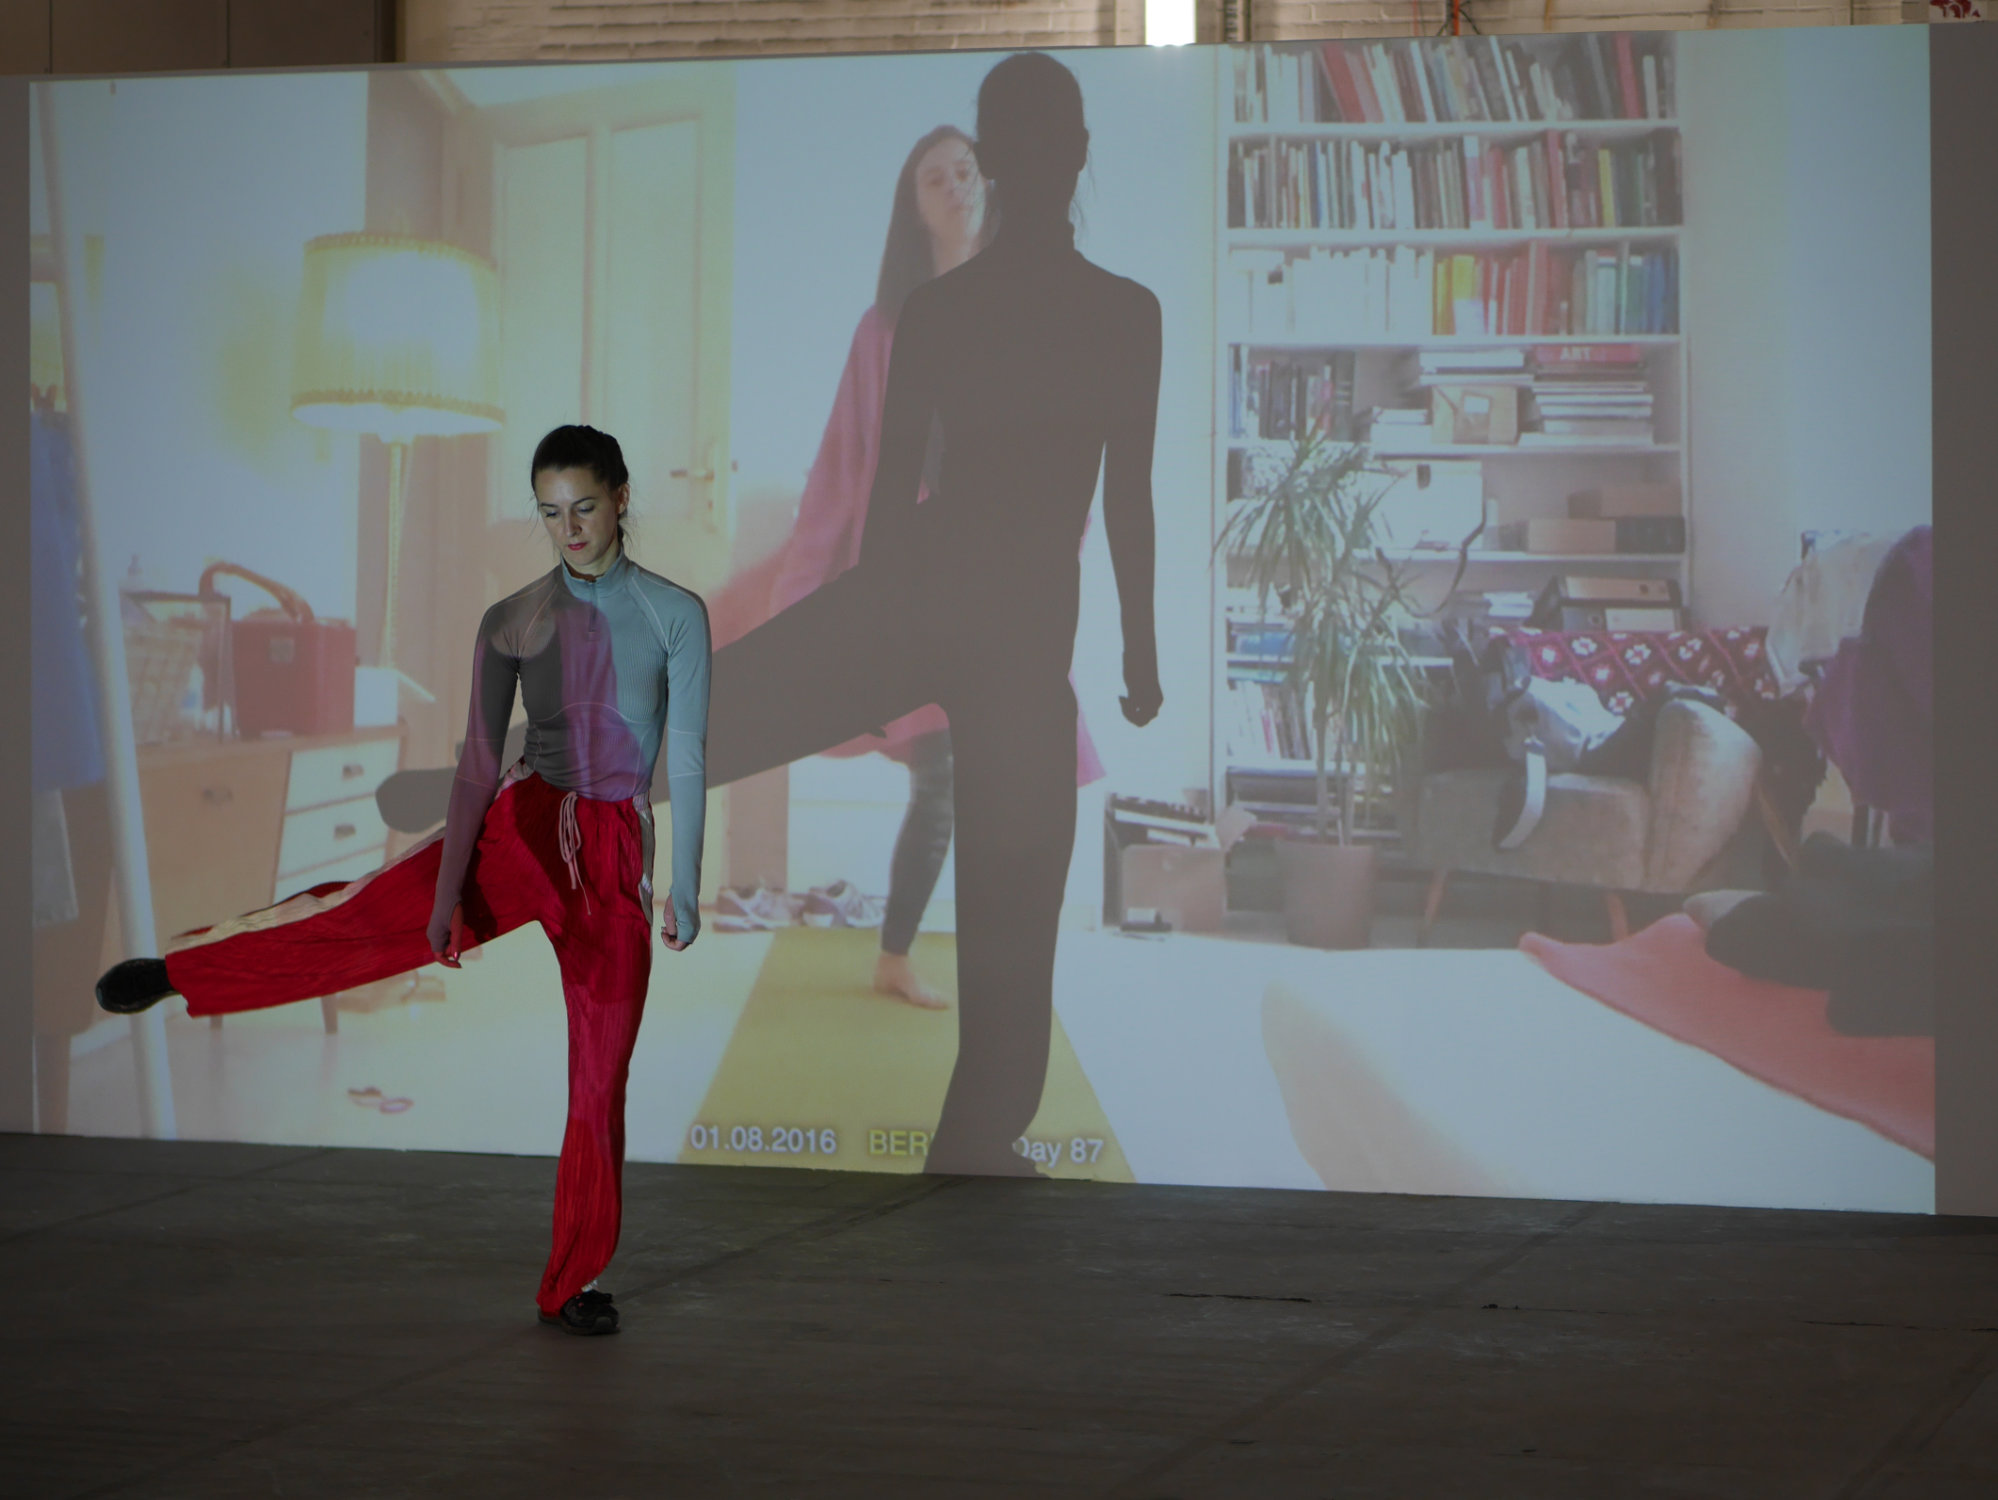 <p><b><i>365 routines<br /> </i></b><b>Dance Performance </b>with Nina Kurtela</p> <p>In <i>365 routines</i> artist and dancer Nina Kurtela and her longtime dance partner Hana Erdman sought to create a conceptual work based on a dance phrase: a short choreographic fragment with the feeling of a beginning and an end. In this case, the phrase is eight beats at 60 BPM. Over the course of a year, the two sent these phrases via cellphone video to each other daily, each reacting to the other's movements. Due to their almost constant travels, they find themselves on opposite sides of the world, with the development of <i>365 routines</i> becoming both a form of communication and one of the only constants in their global lives. The culmination of the individual videos was projected at the Berlin Art Prize exhibition. At this event Nina Kurtela performed the entirety of the one-year-choreography live with the video work.</p>